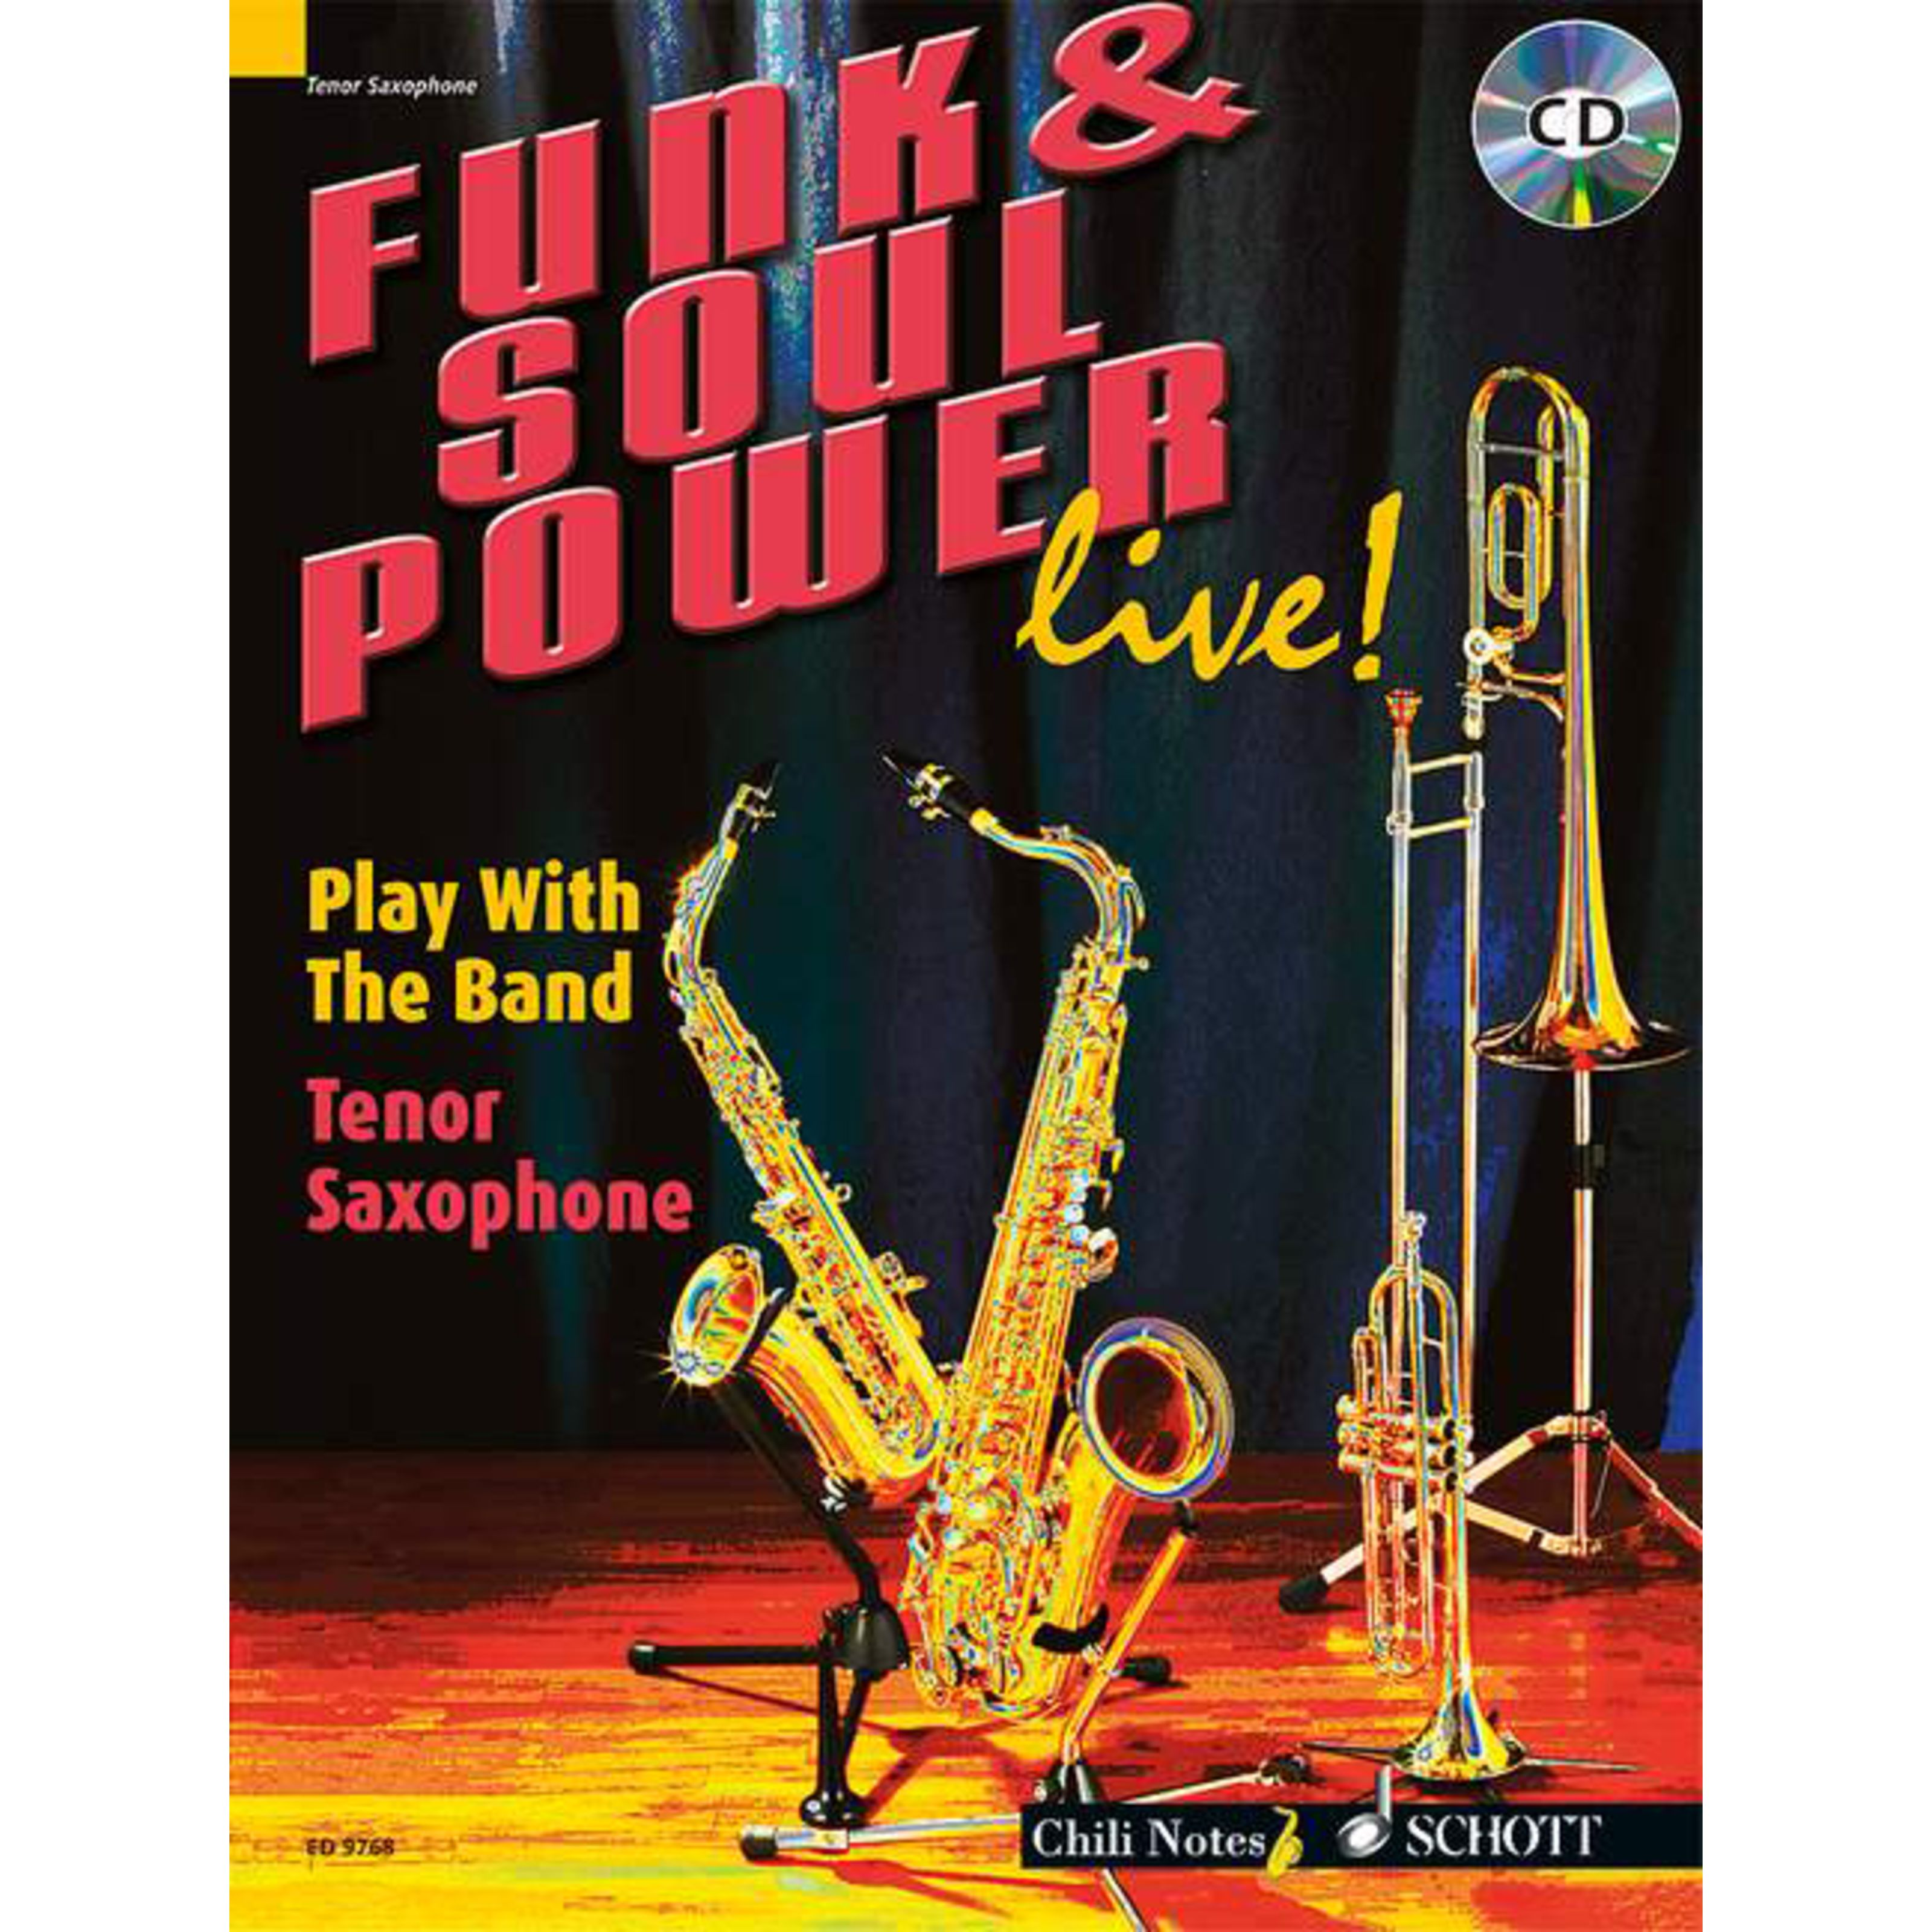 Schott Music - Funk & Soul Power Tenor Saxoph Dechert, Buch und Playalong CD ED 9768